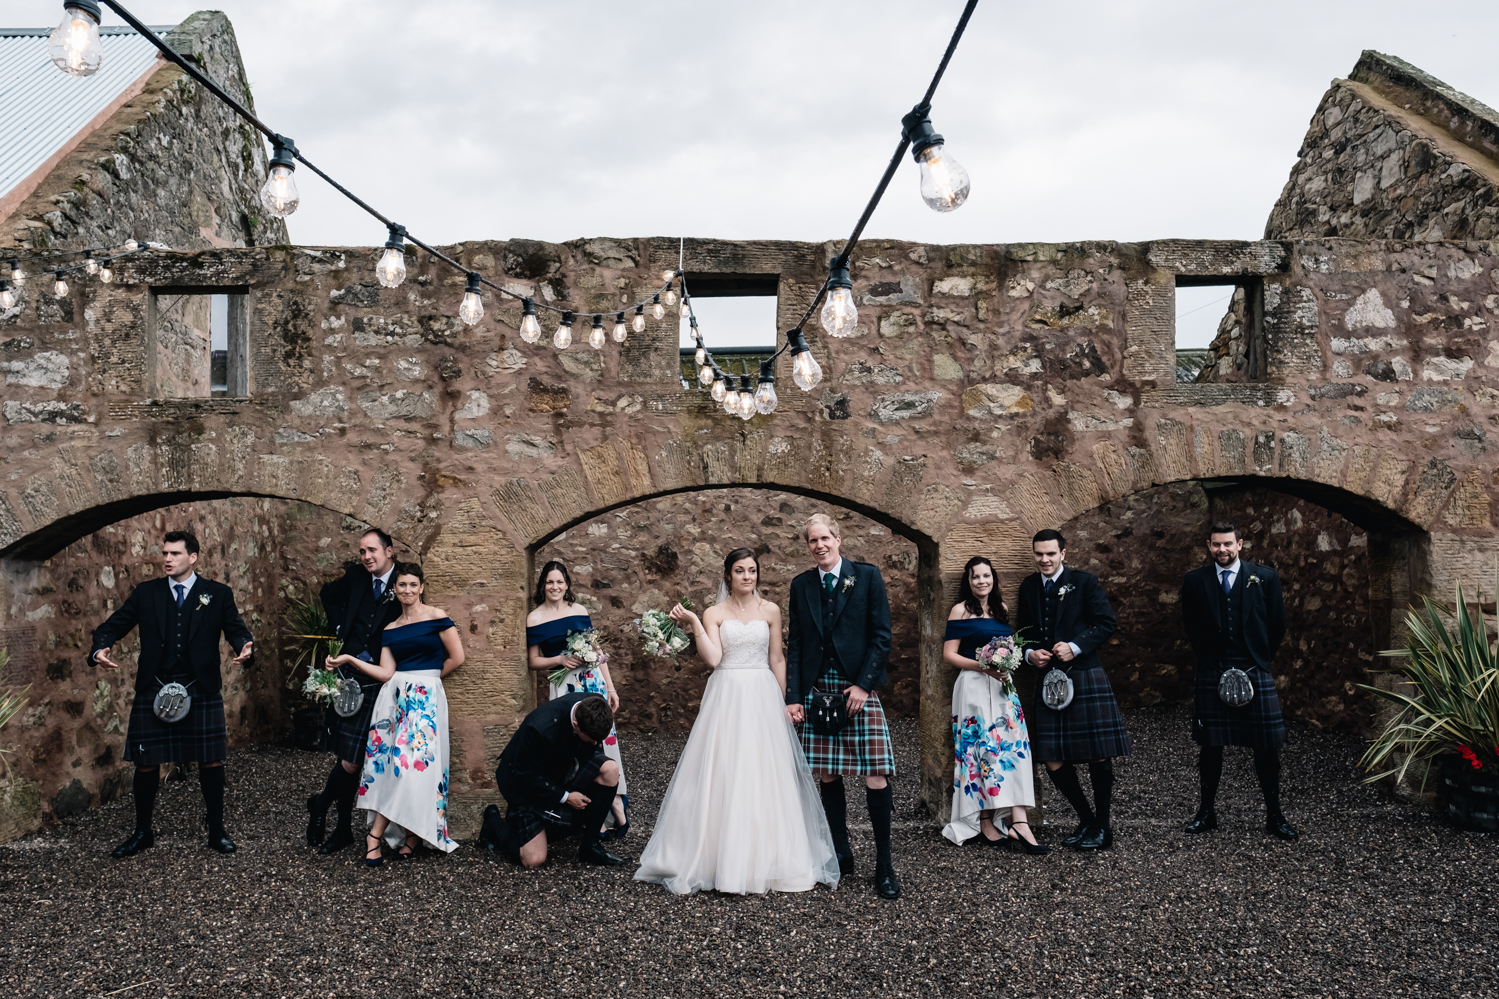 The bridal party are all standing with various expressions + stances in this unconventional bridal portrait.